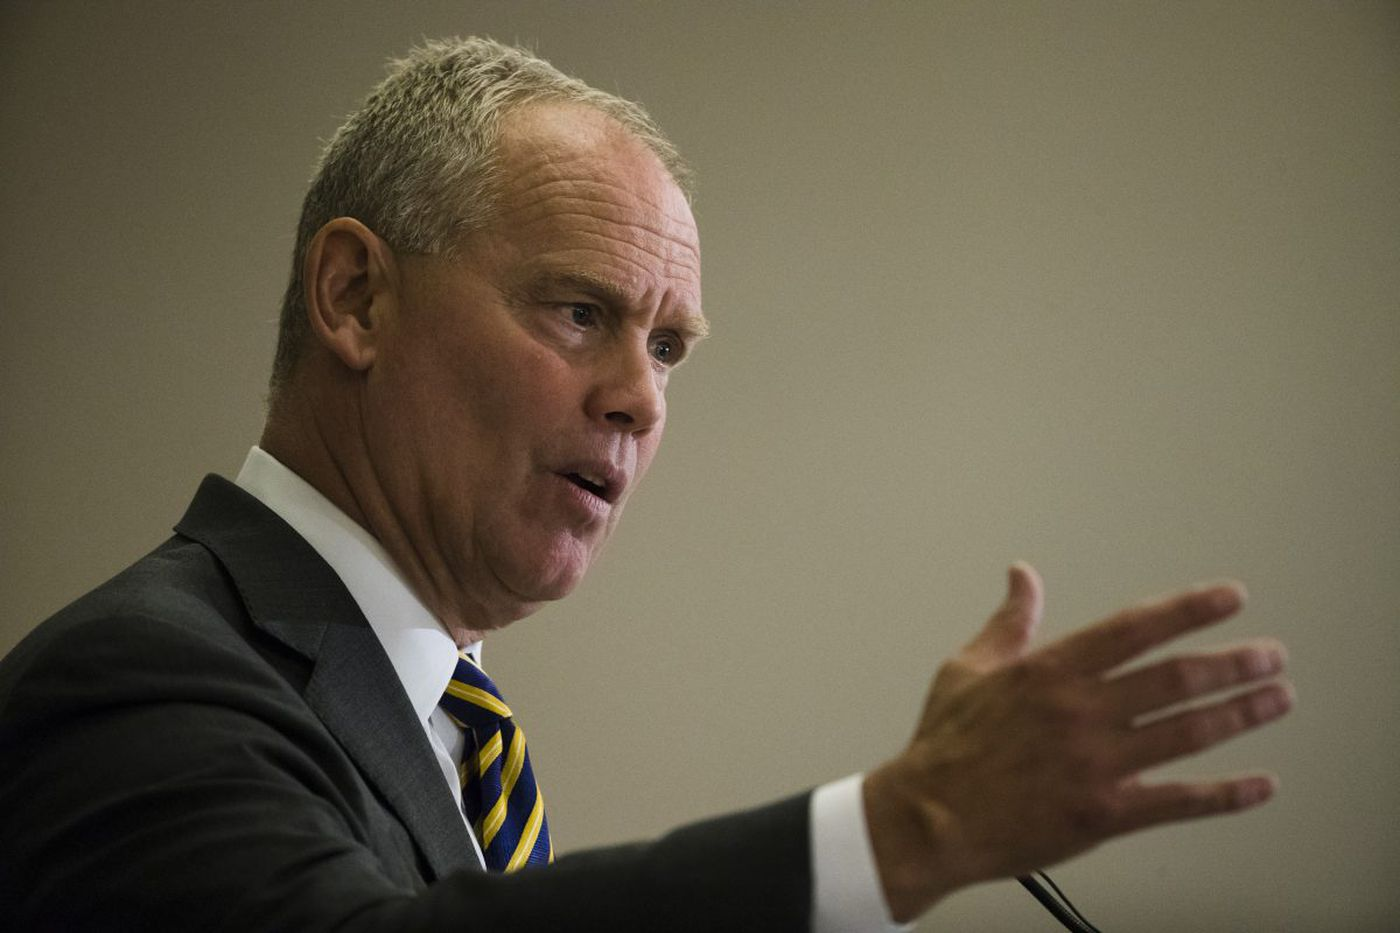 Is Turzai video an ad for governor's race?